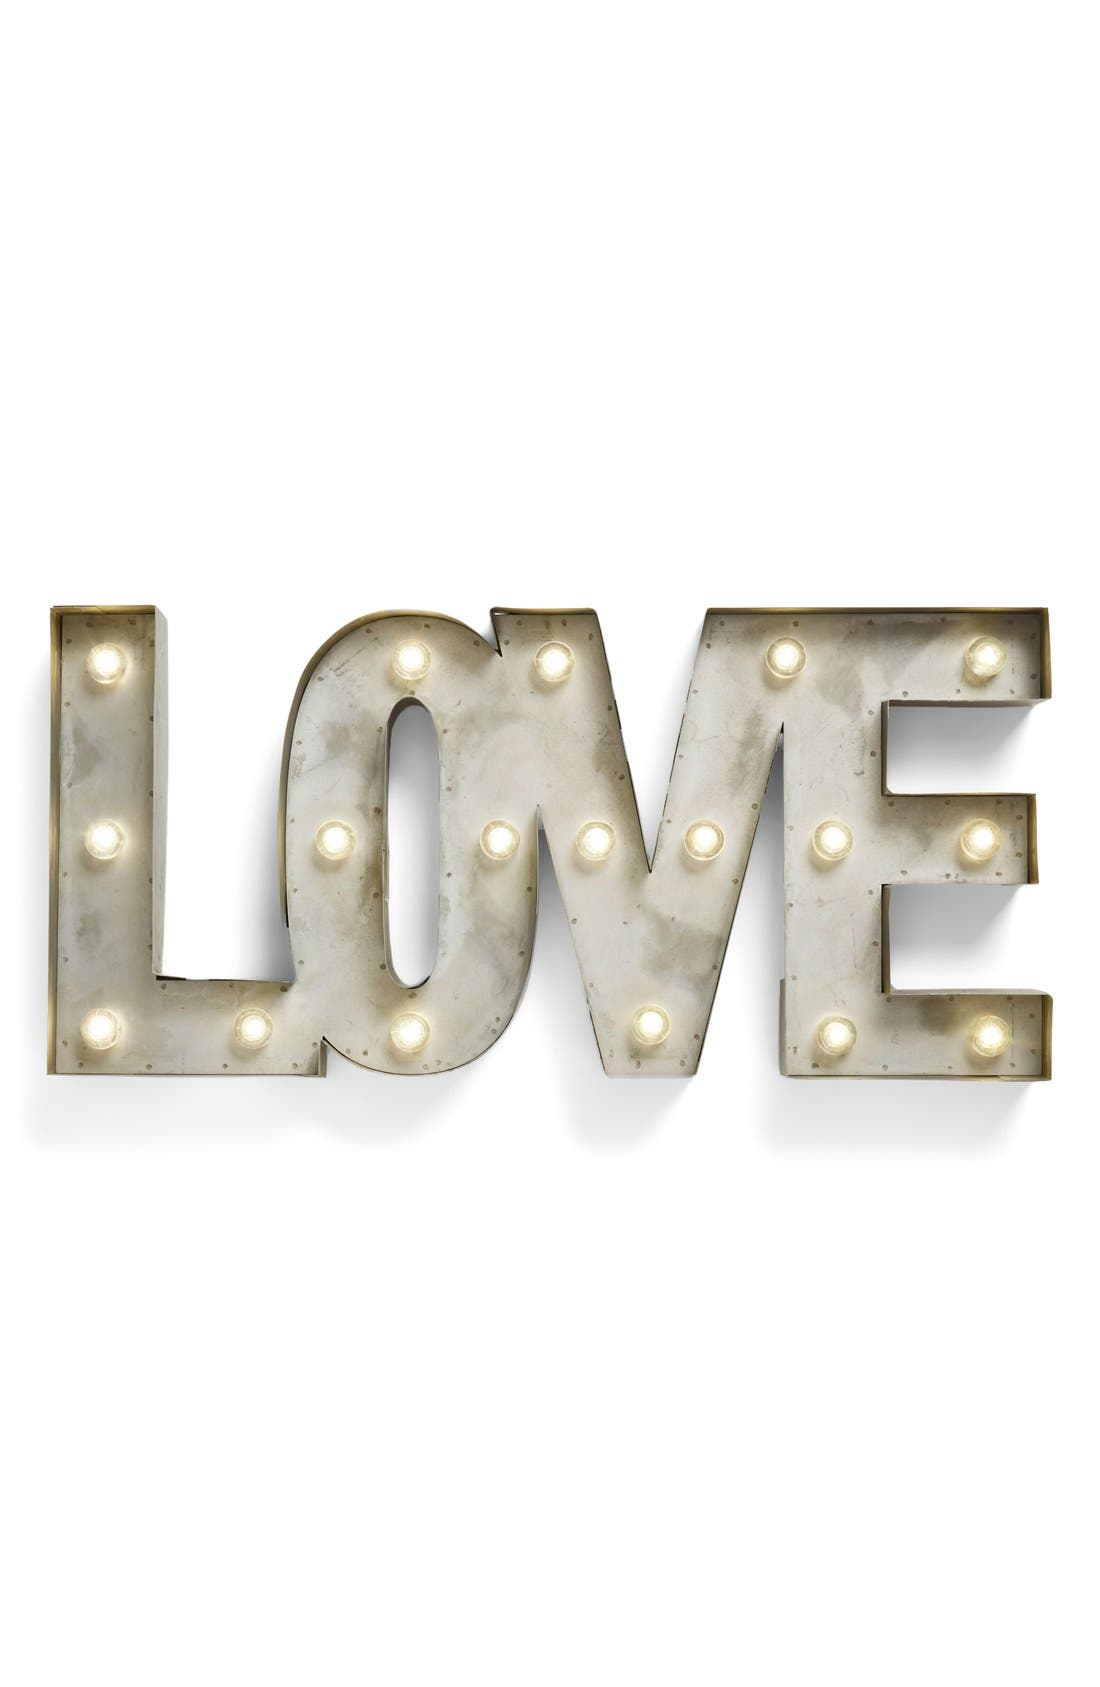 'LOVE' LED Marquee Sign,                             Main thumbnail 1, color,                             Metal